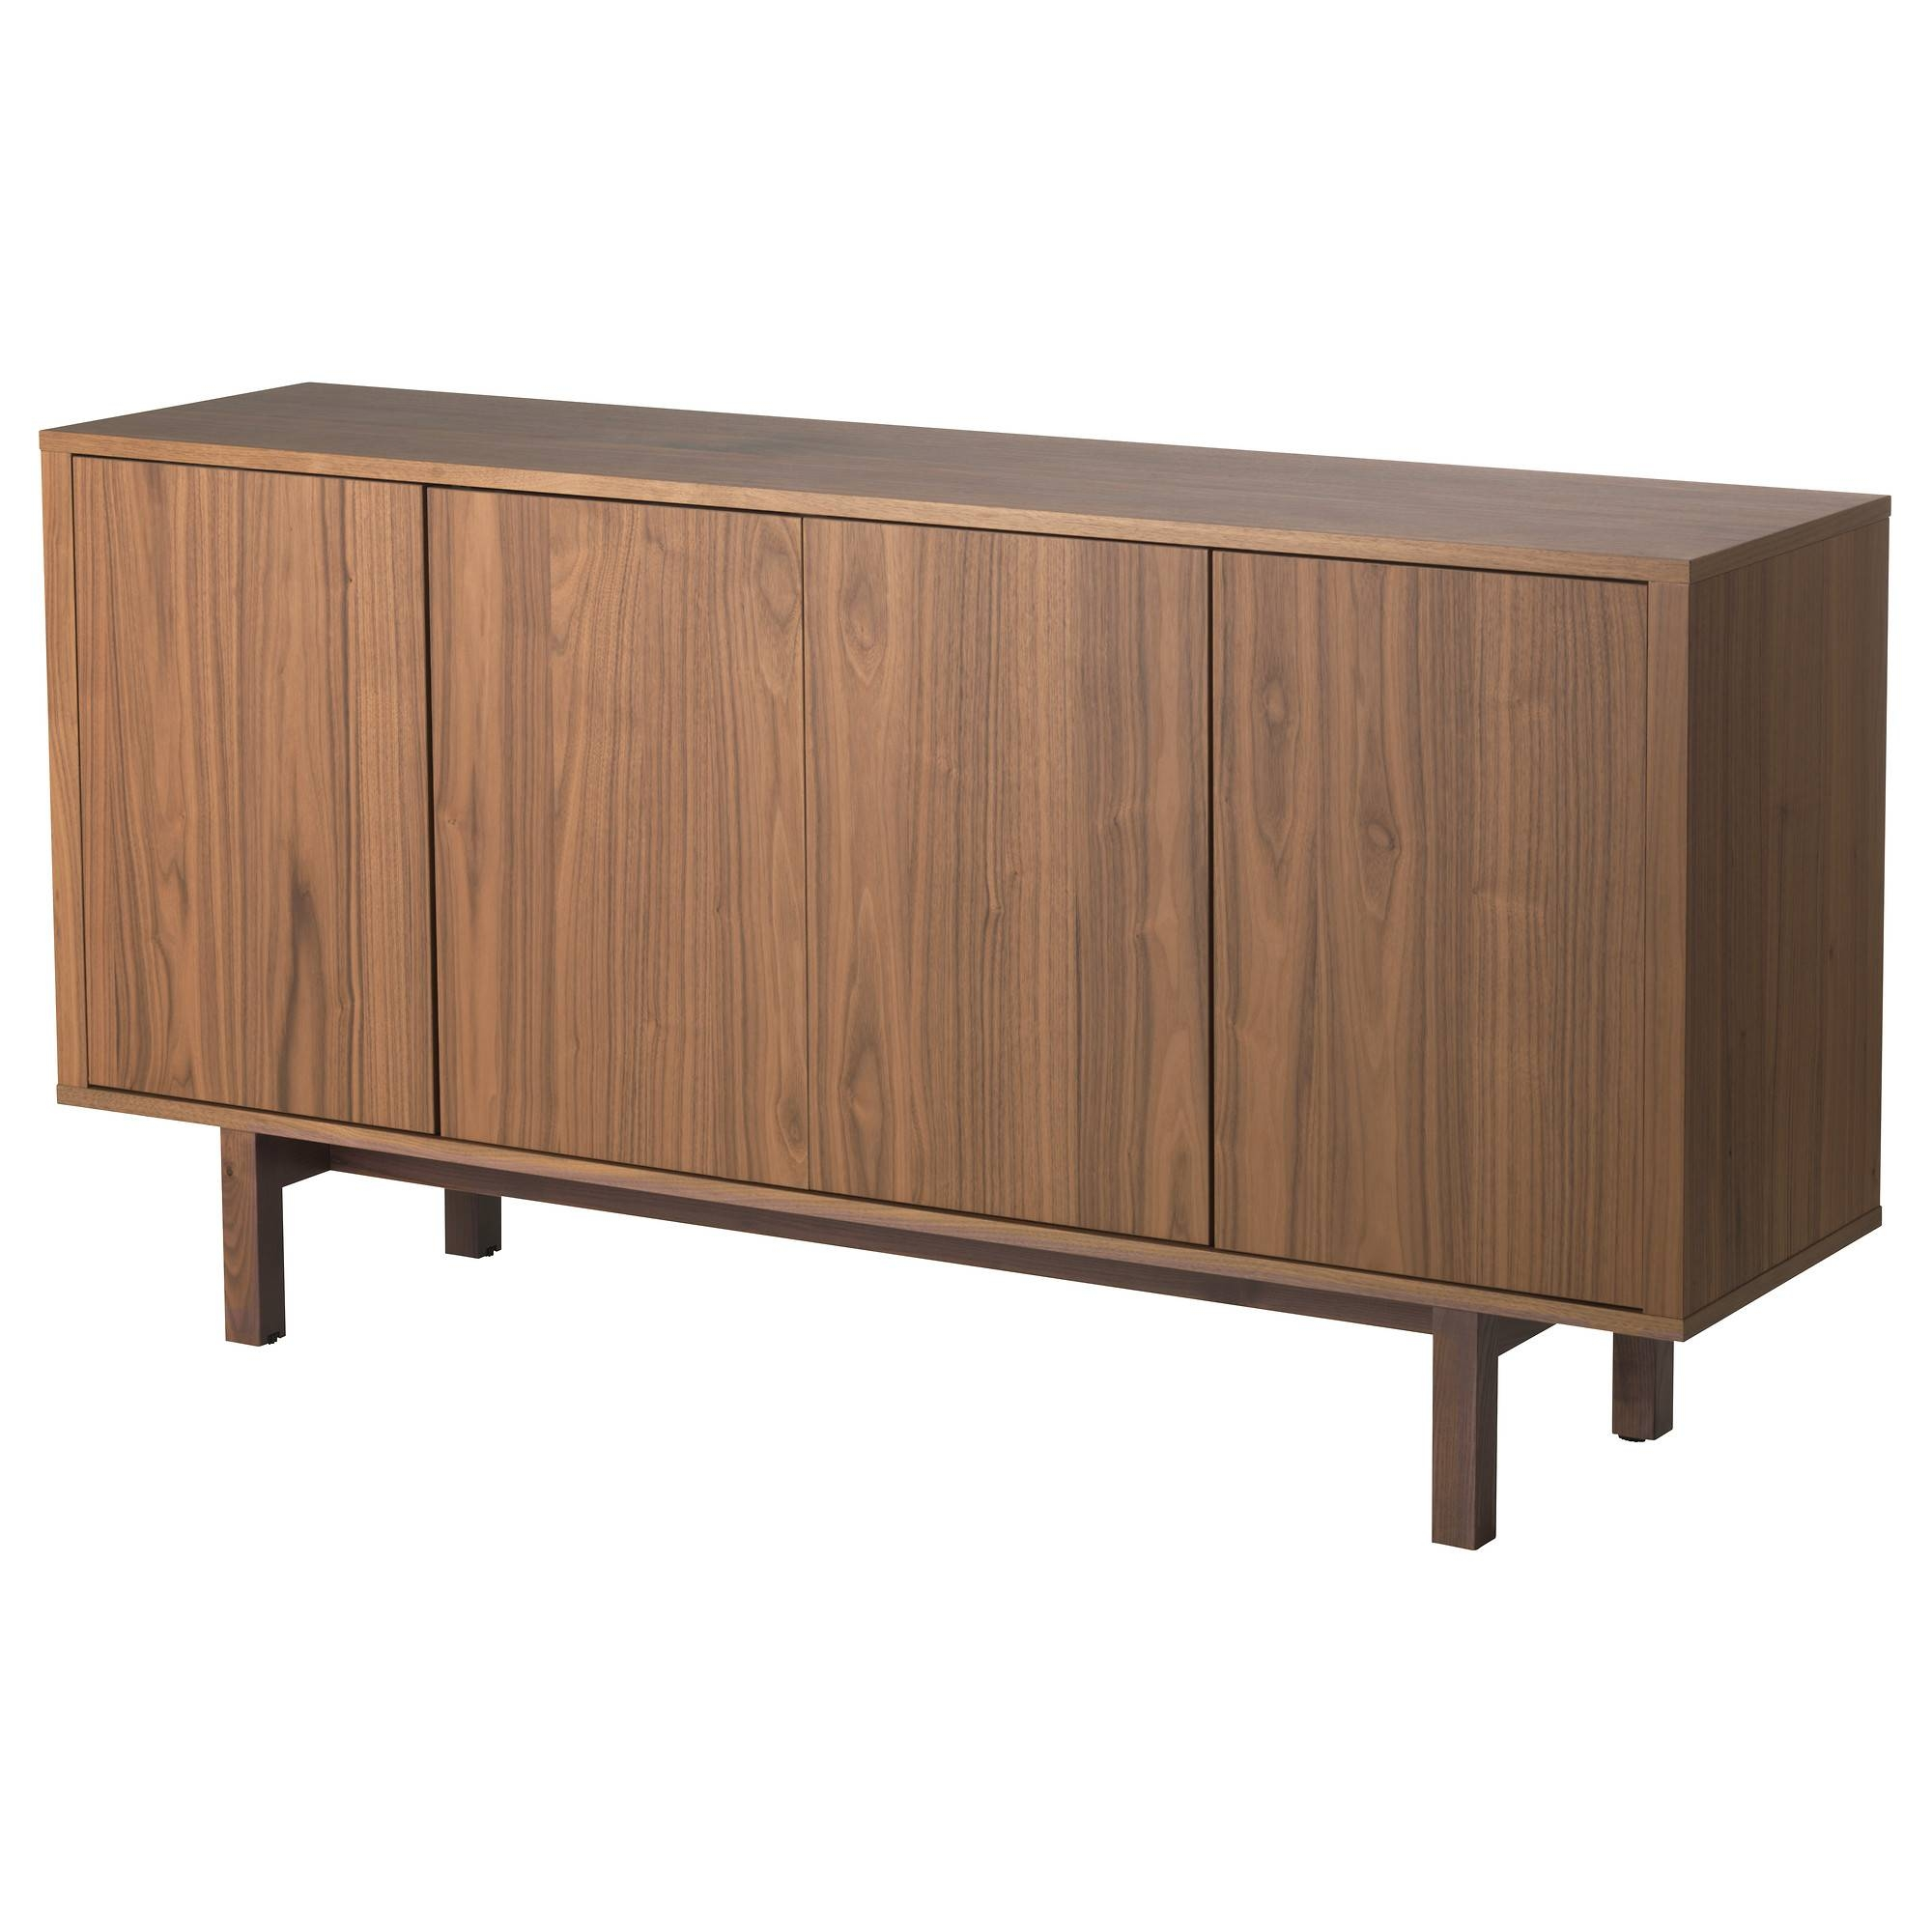 Stockholm Sideboard - Ikea for Sideboard Tables (Image 15 of 15)